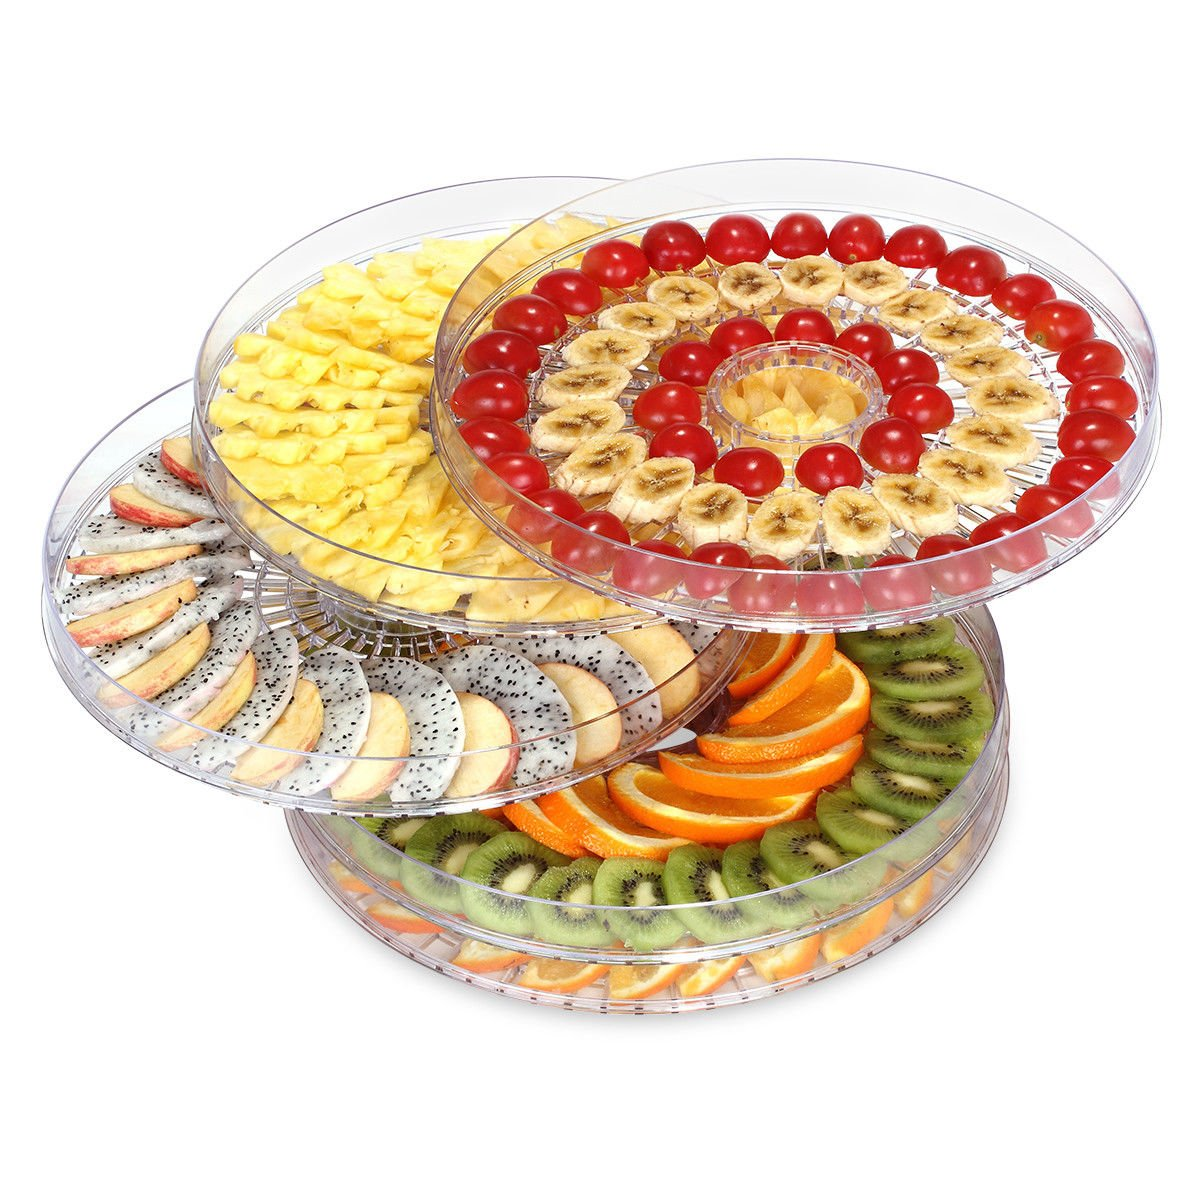 Unbrand/Great supply Electric Food Dehydrator Fruit Vegetable Dryer by Unbrand/Great supply (Image #5)